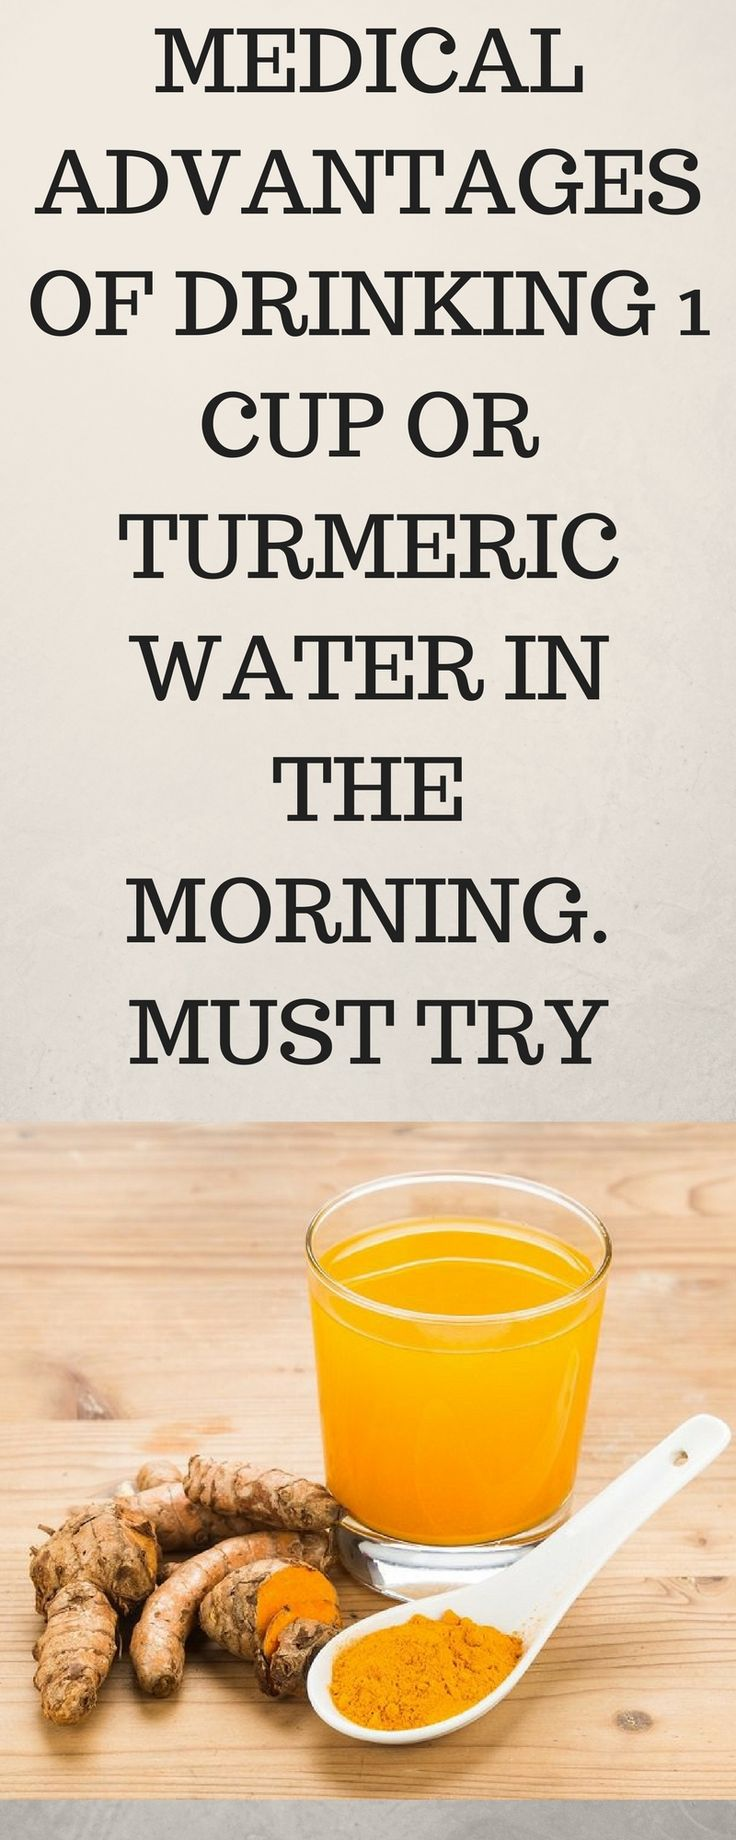 MEDICAL ADVANTAGES OF DRINKING 1 CUP OR TURMERIC WATER IN THE MORNING. MUST TRY